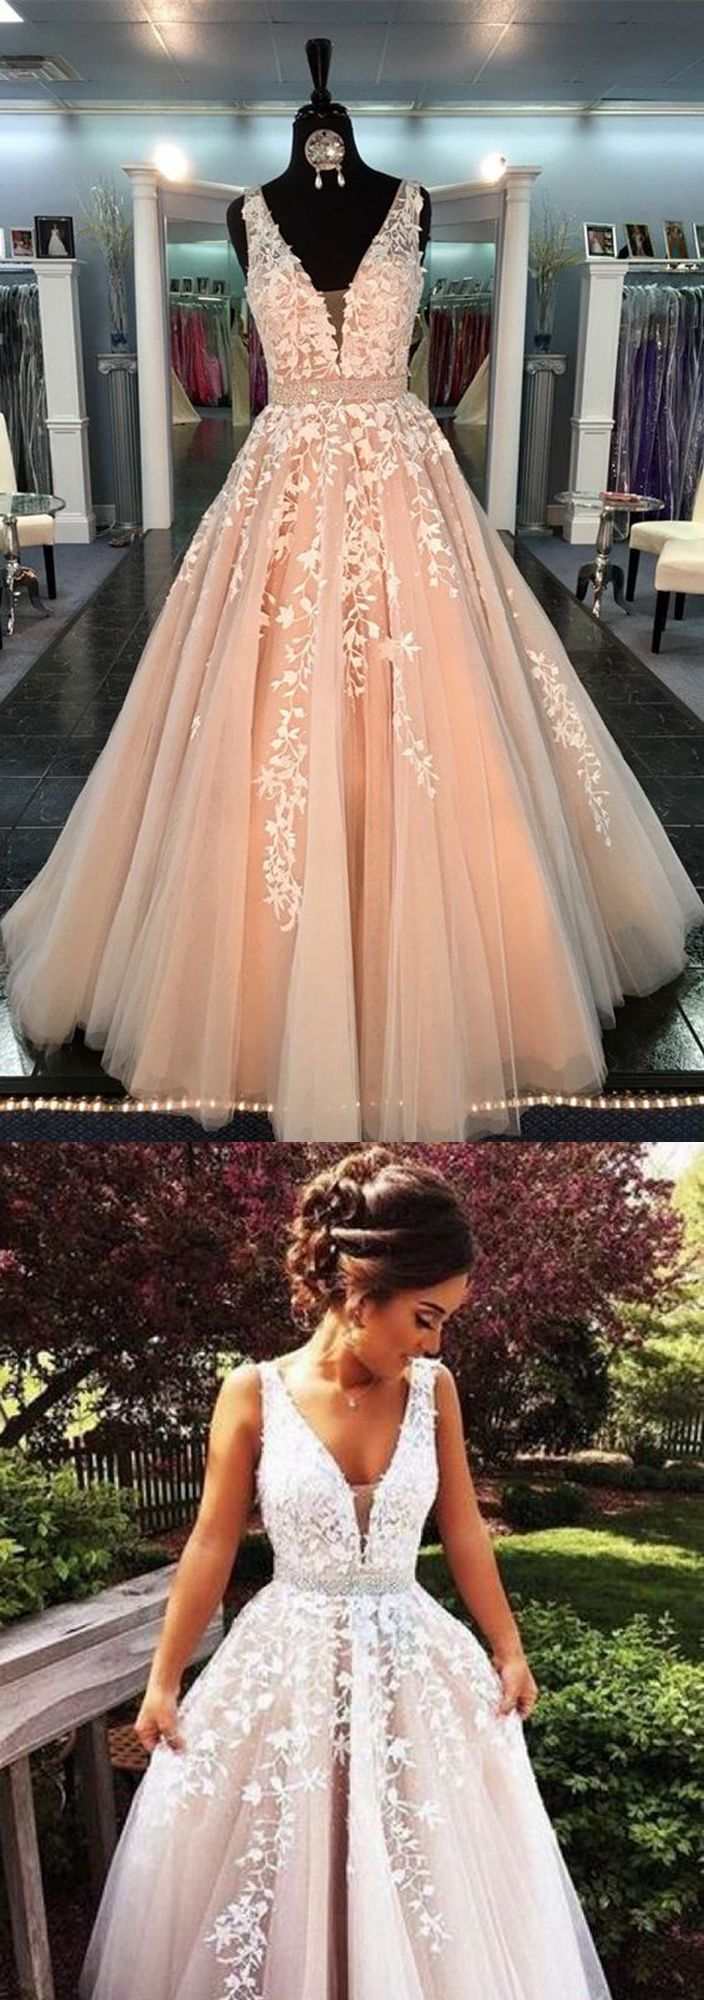 best long prom dresses images on pinterest ball gowns prom